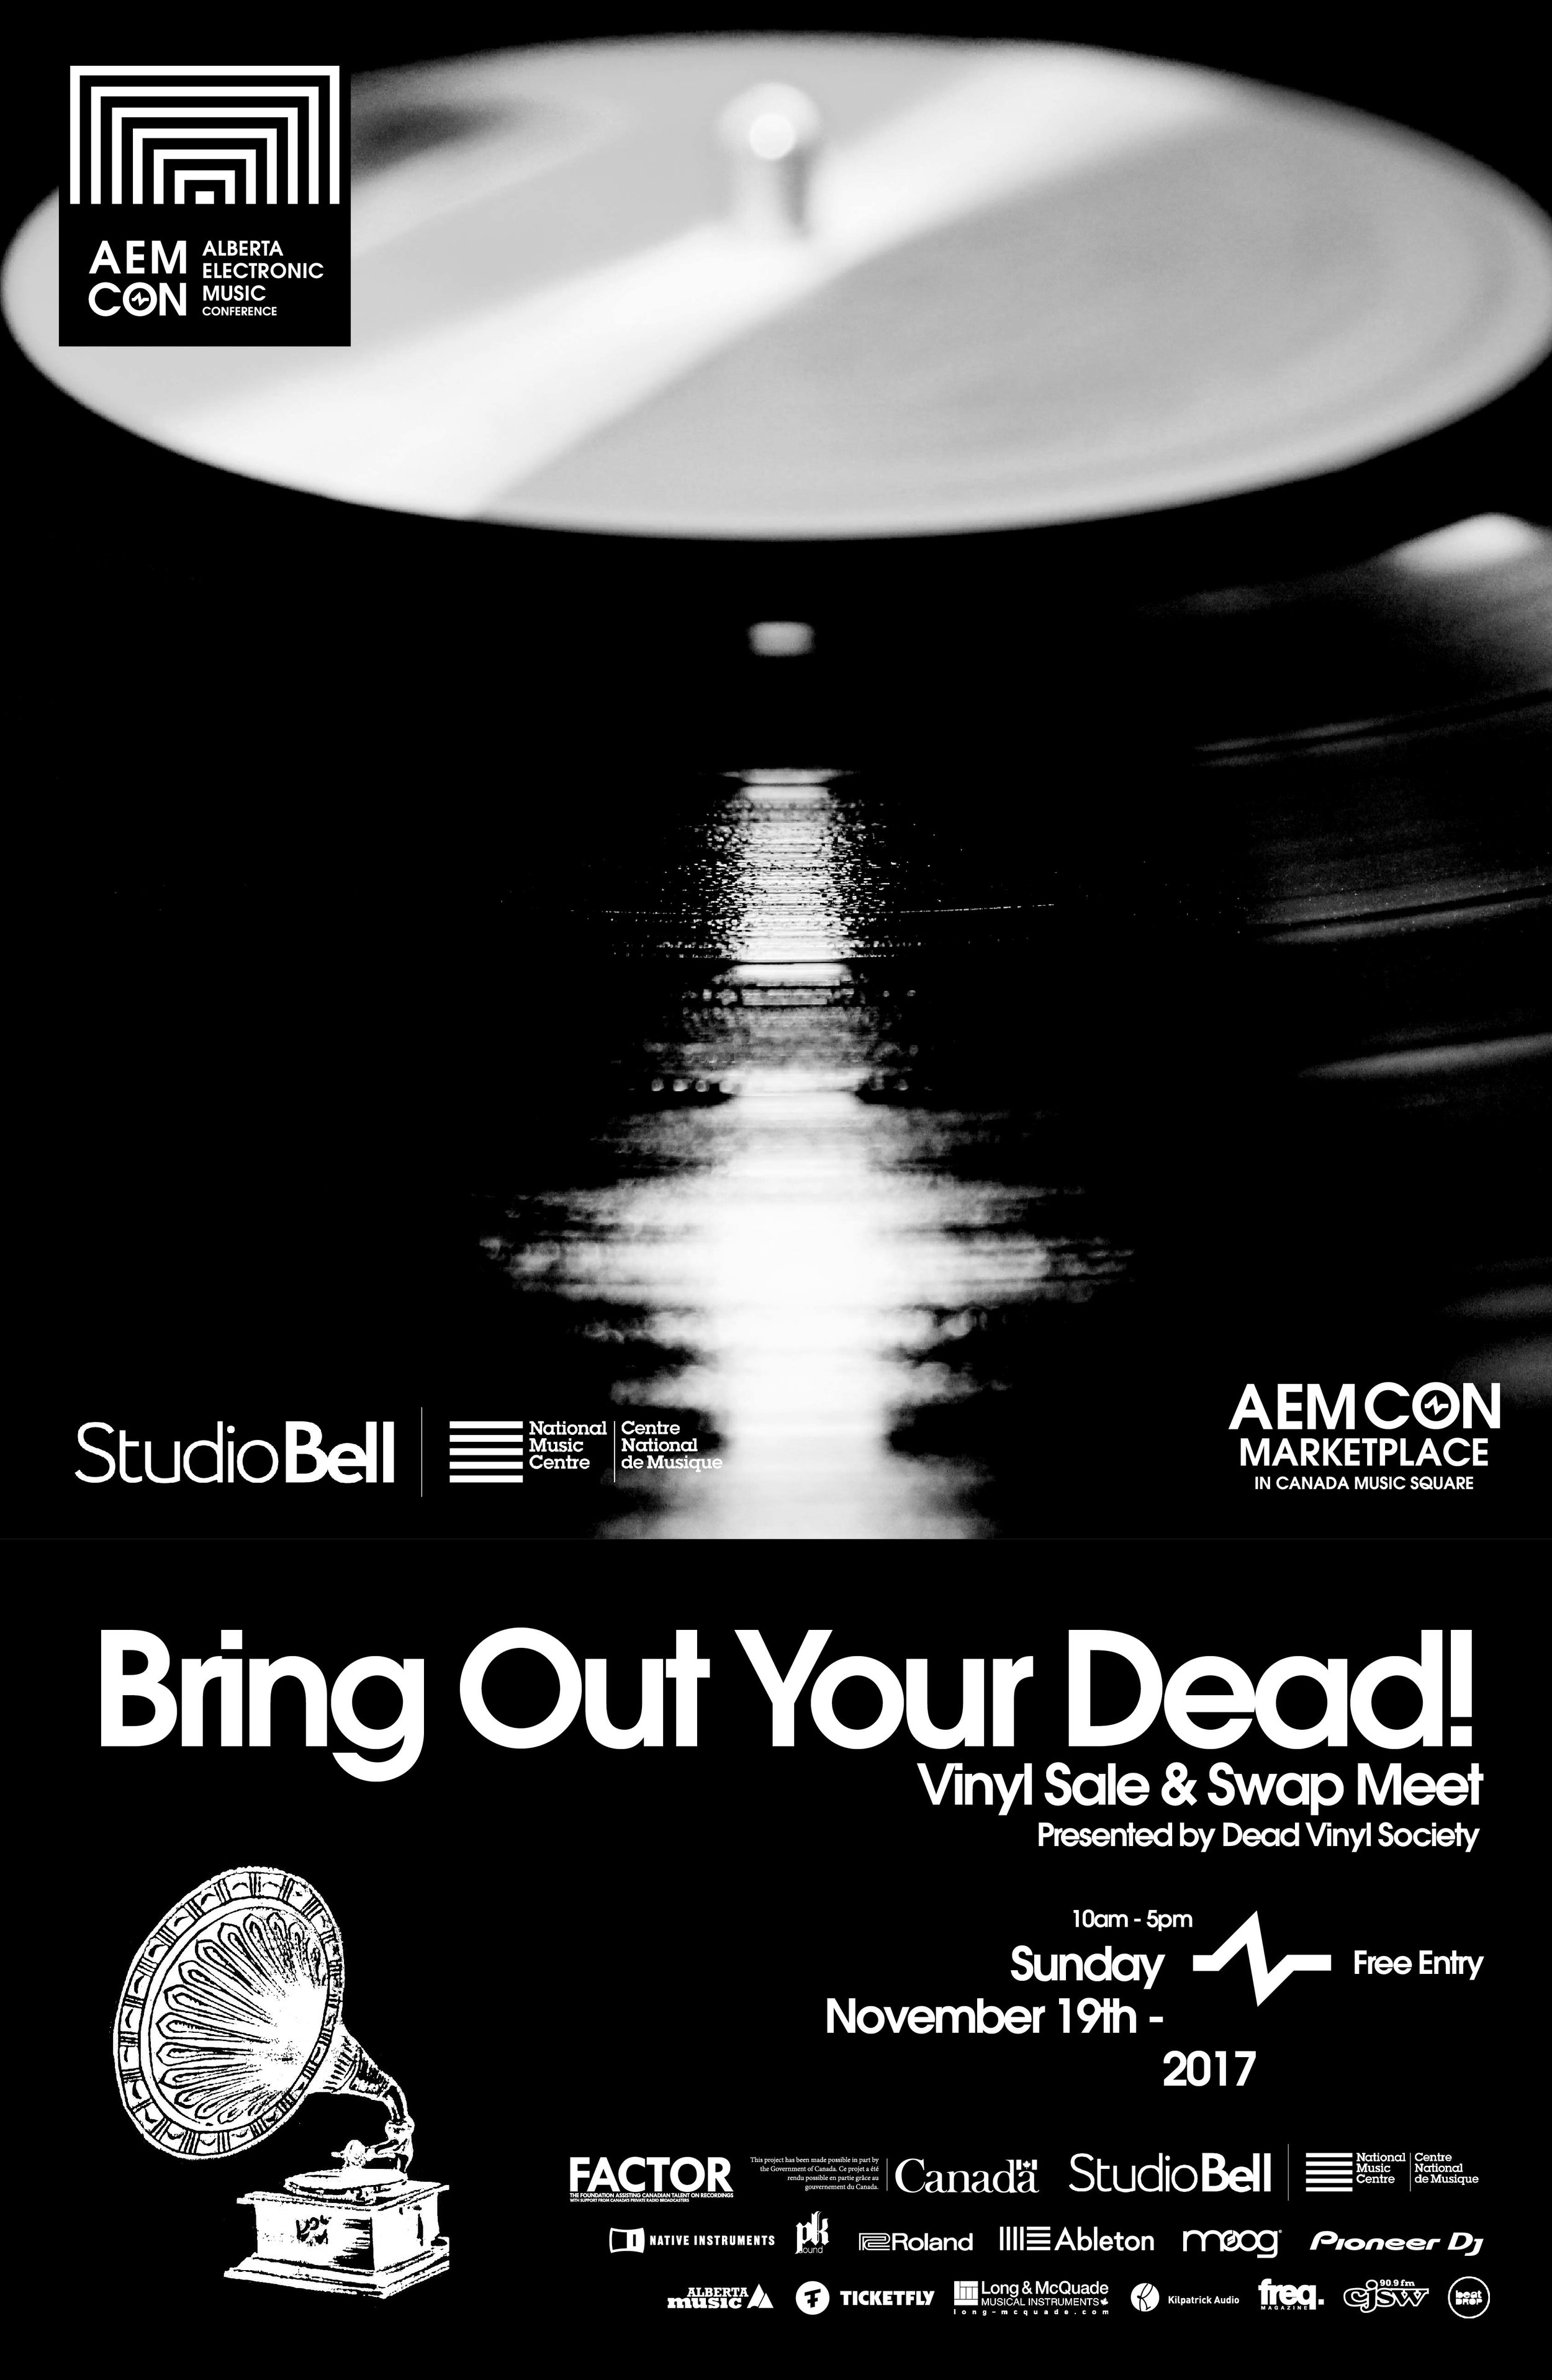 Bring-Out-Your-Dead-01.jpg